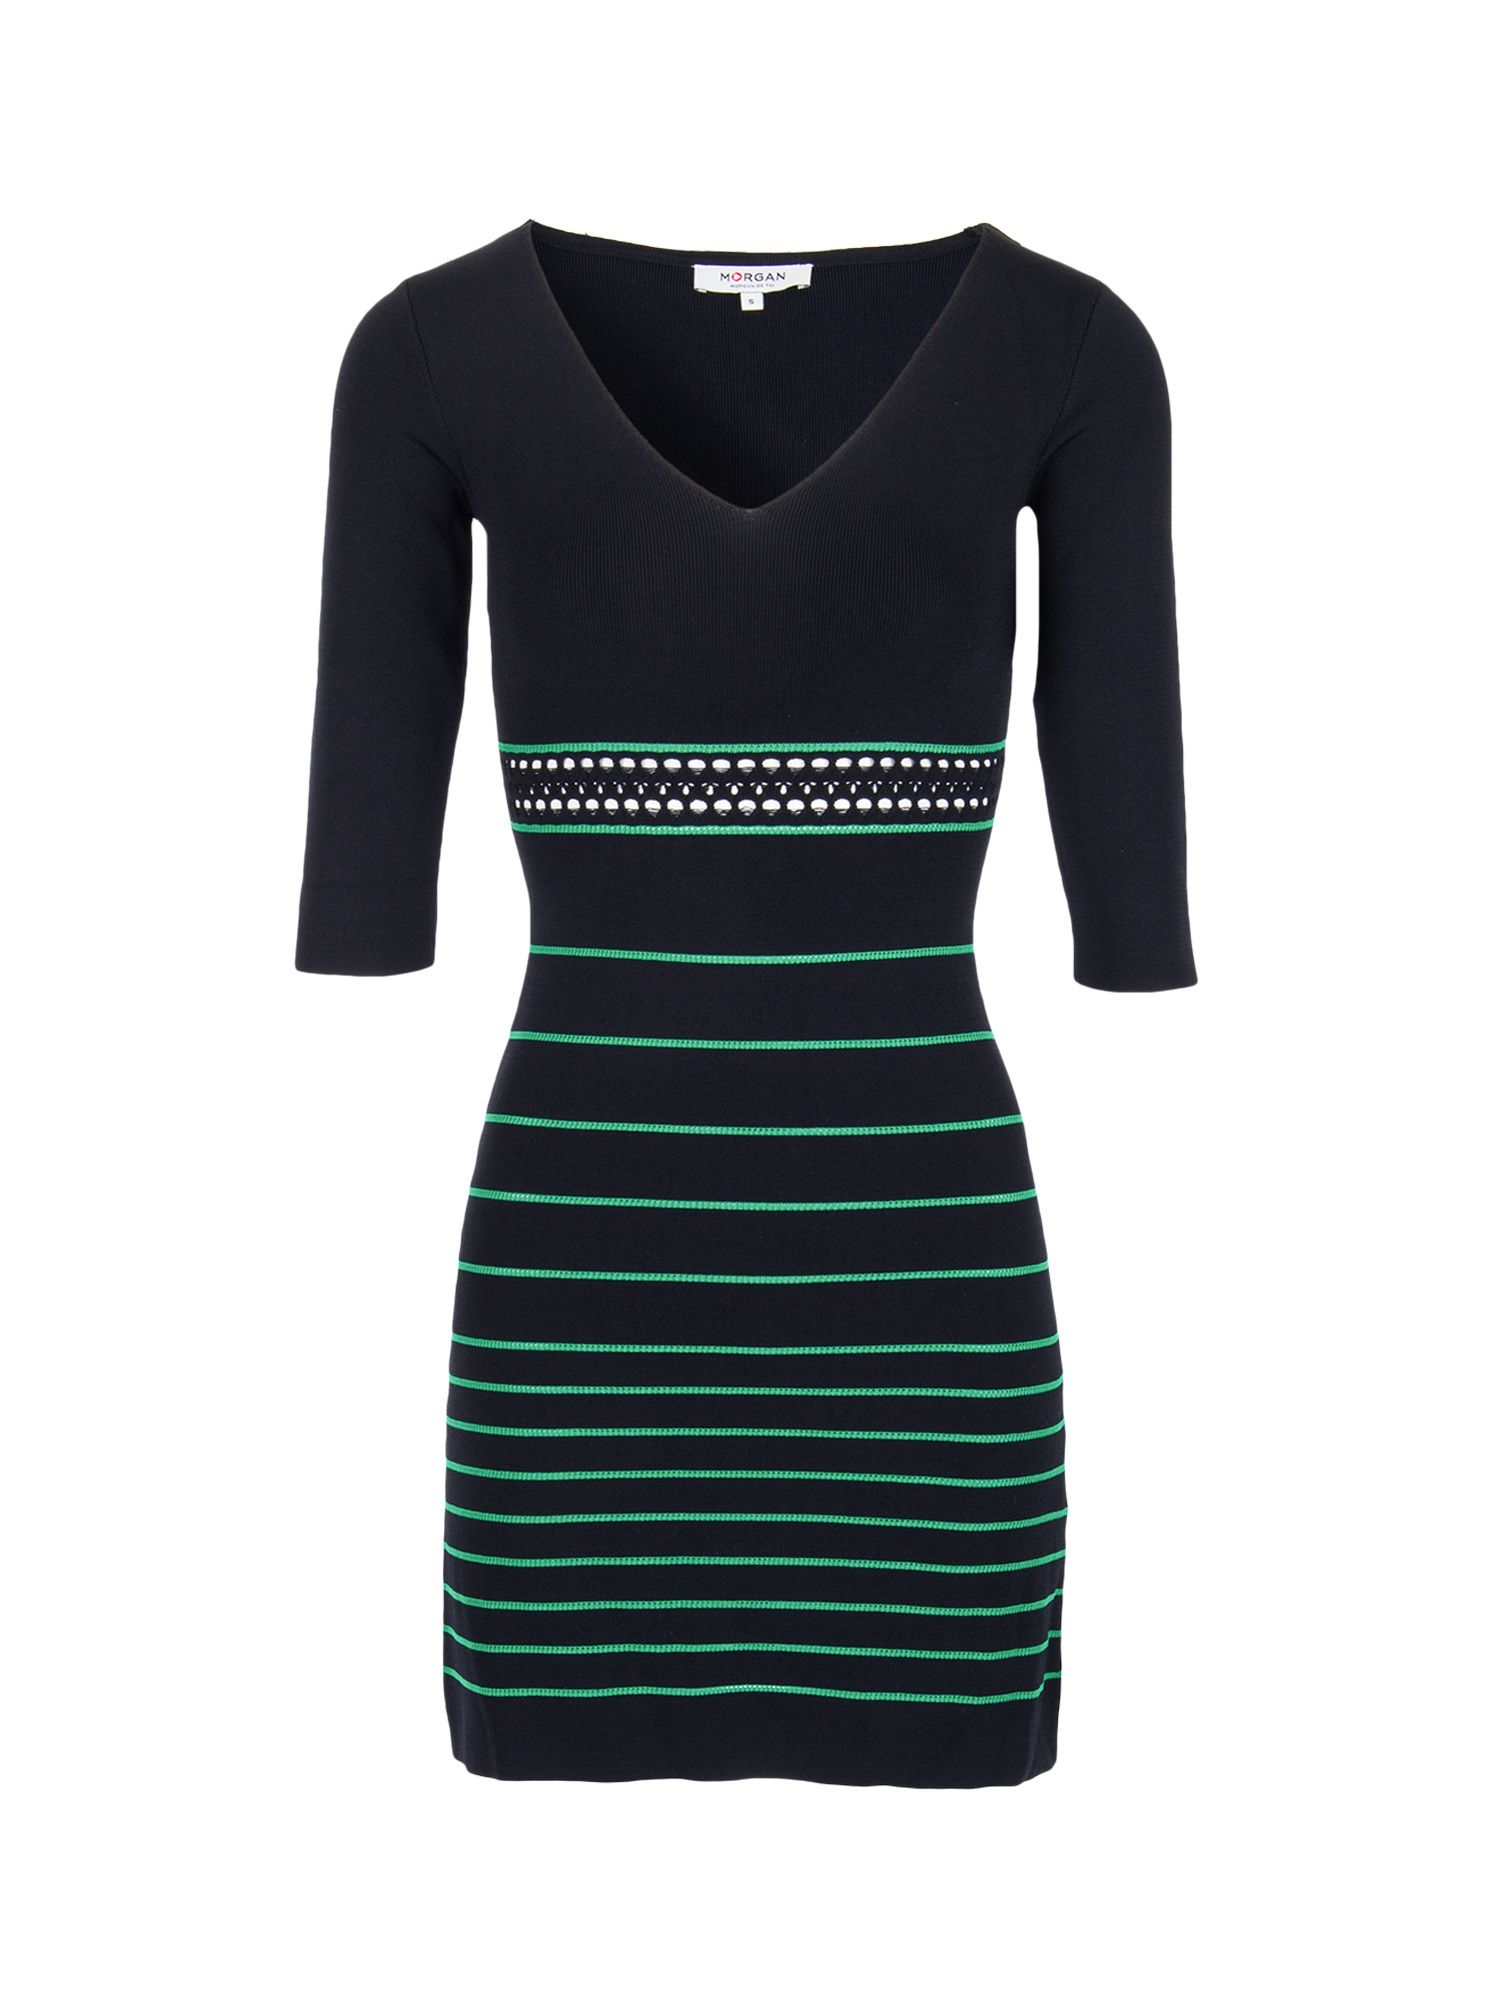 Morgan Openwork Striped Knit Dress Black